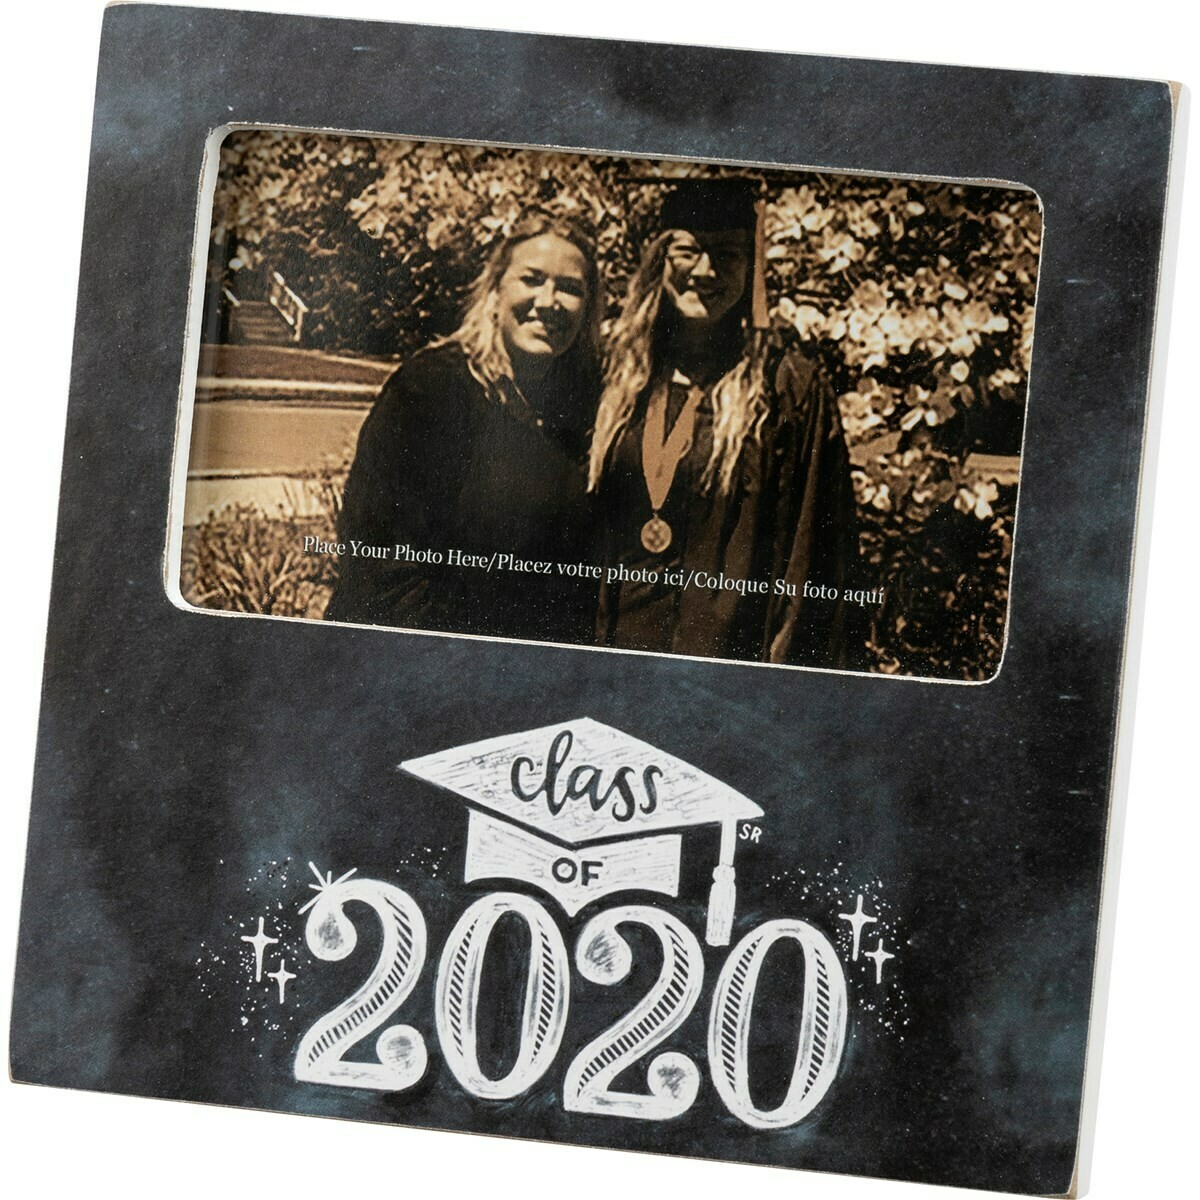 Class of 2020 Frame